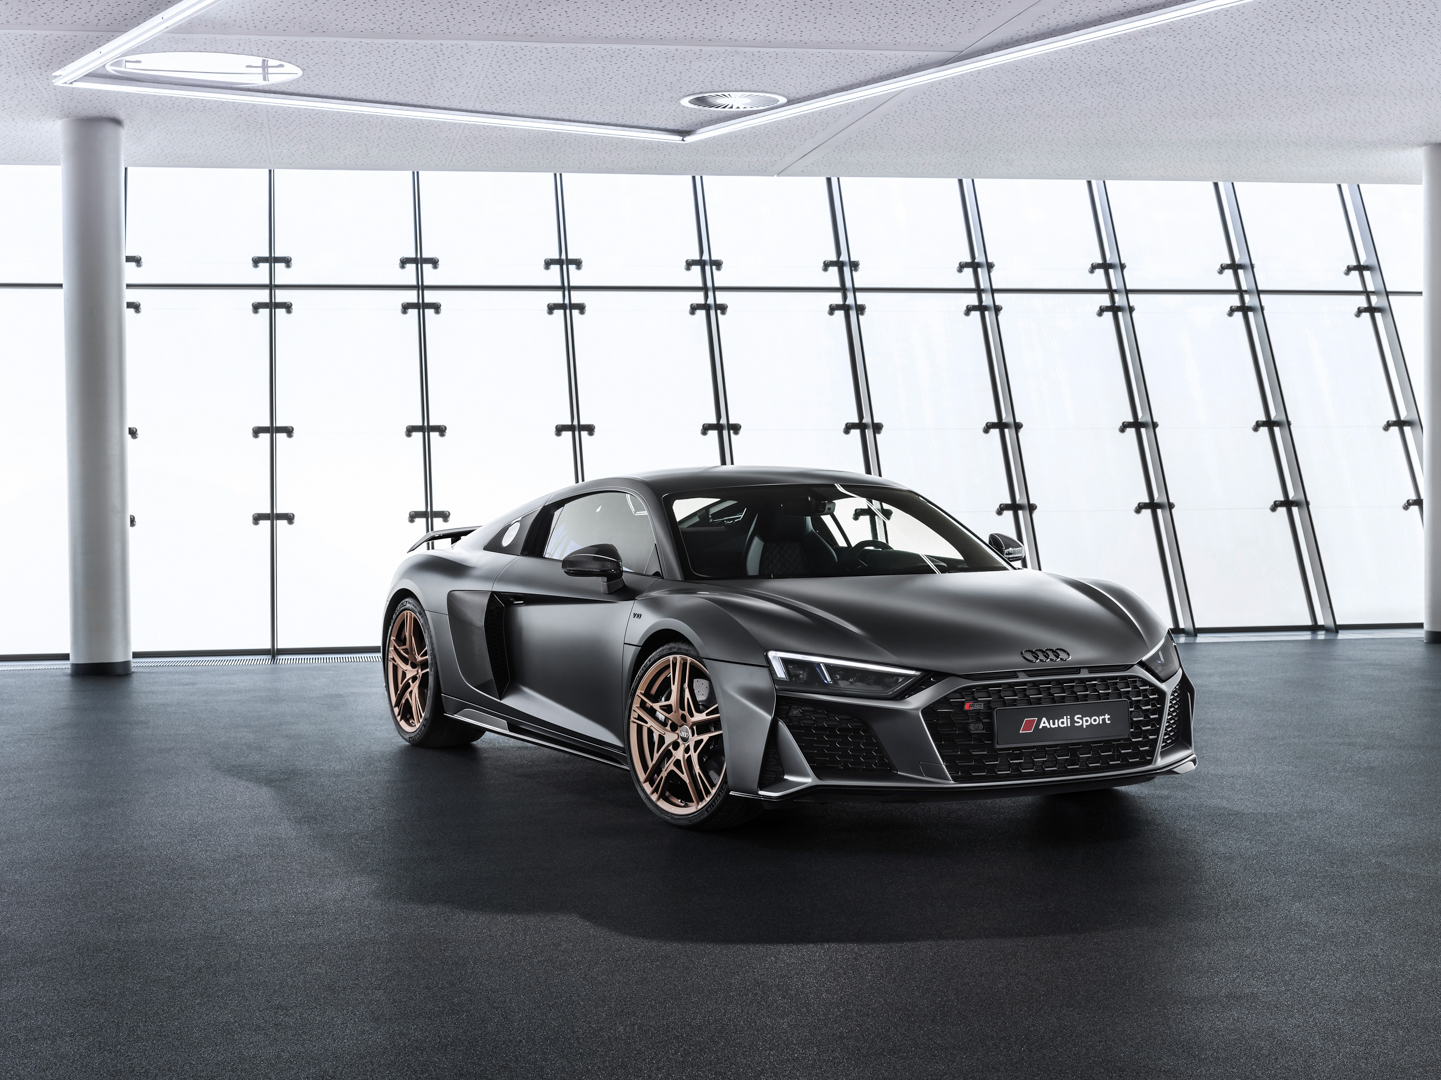 Audi R8 and Audi TT could be saved by going electric